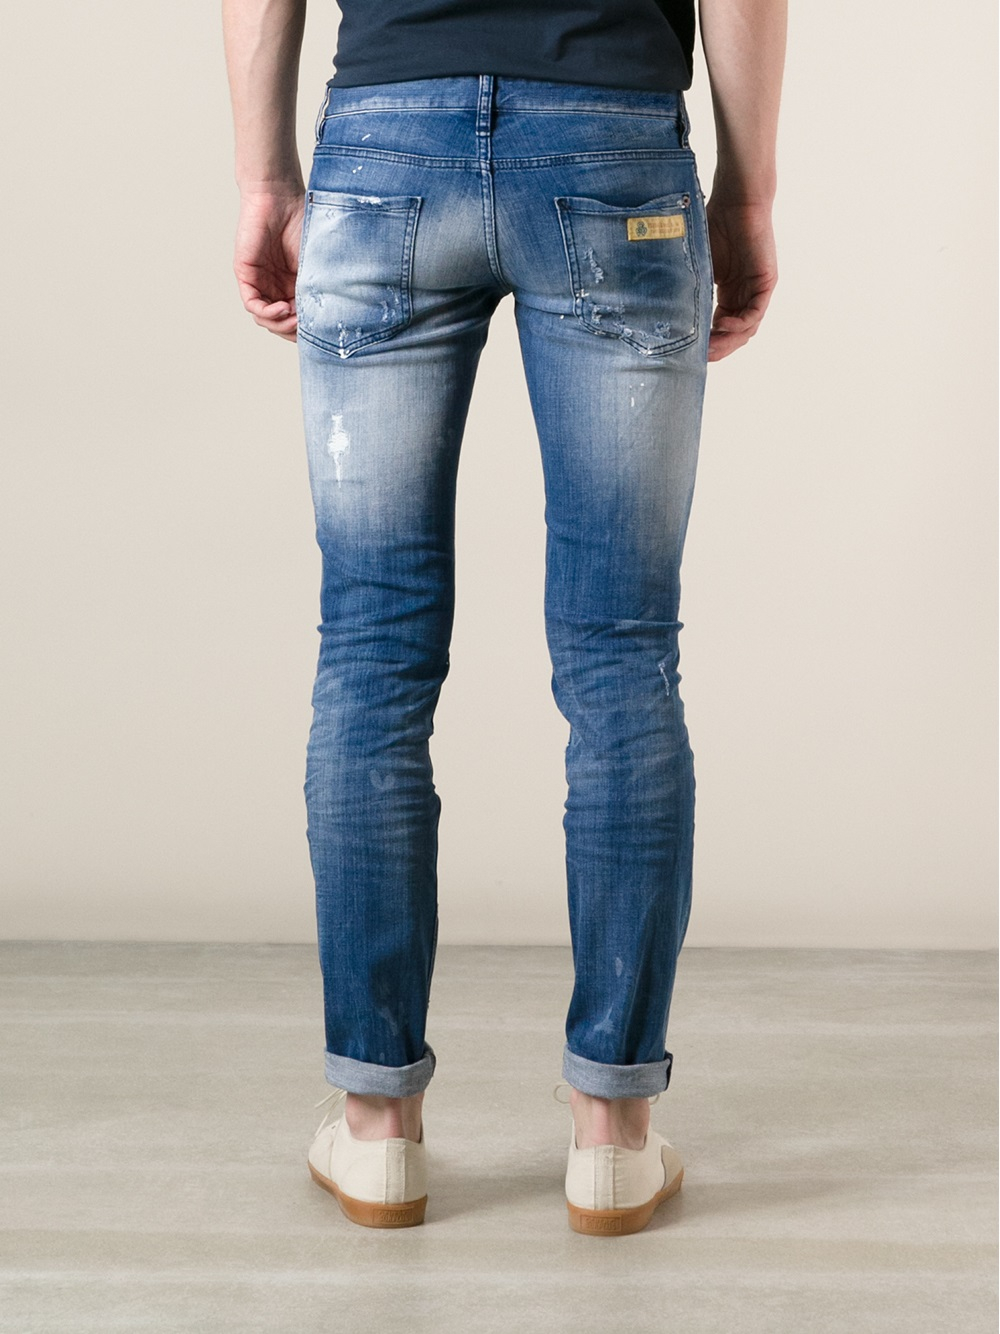 DSquared² Distressed Skinny Jeans in Blue for Men